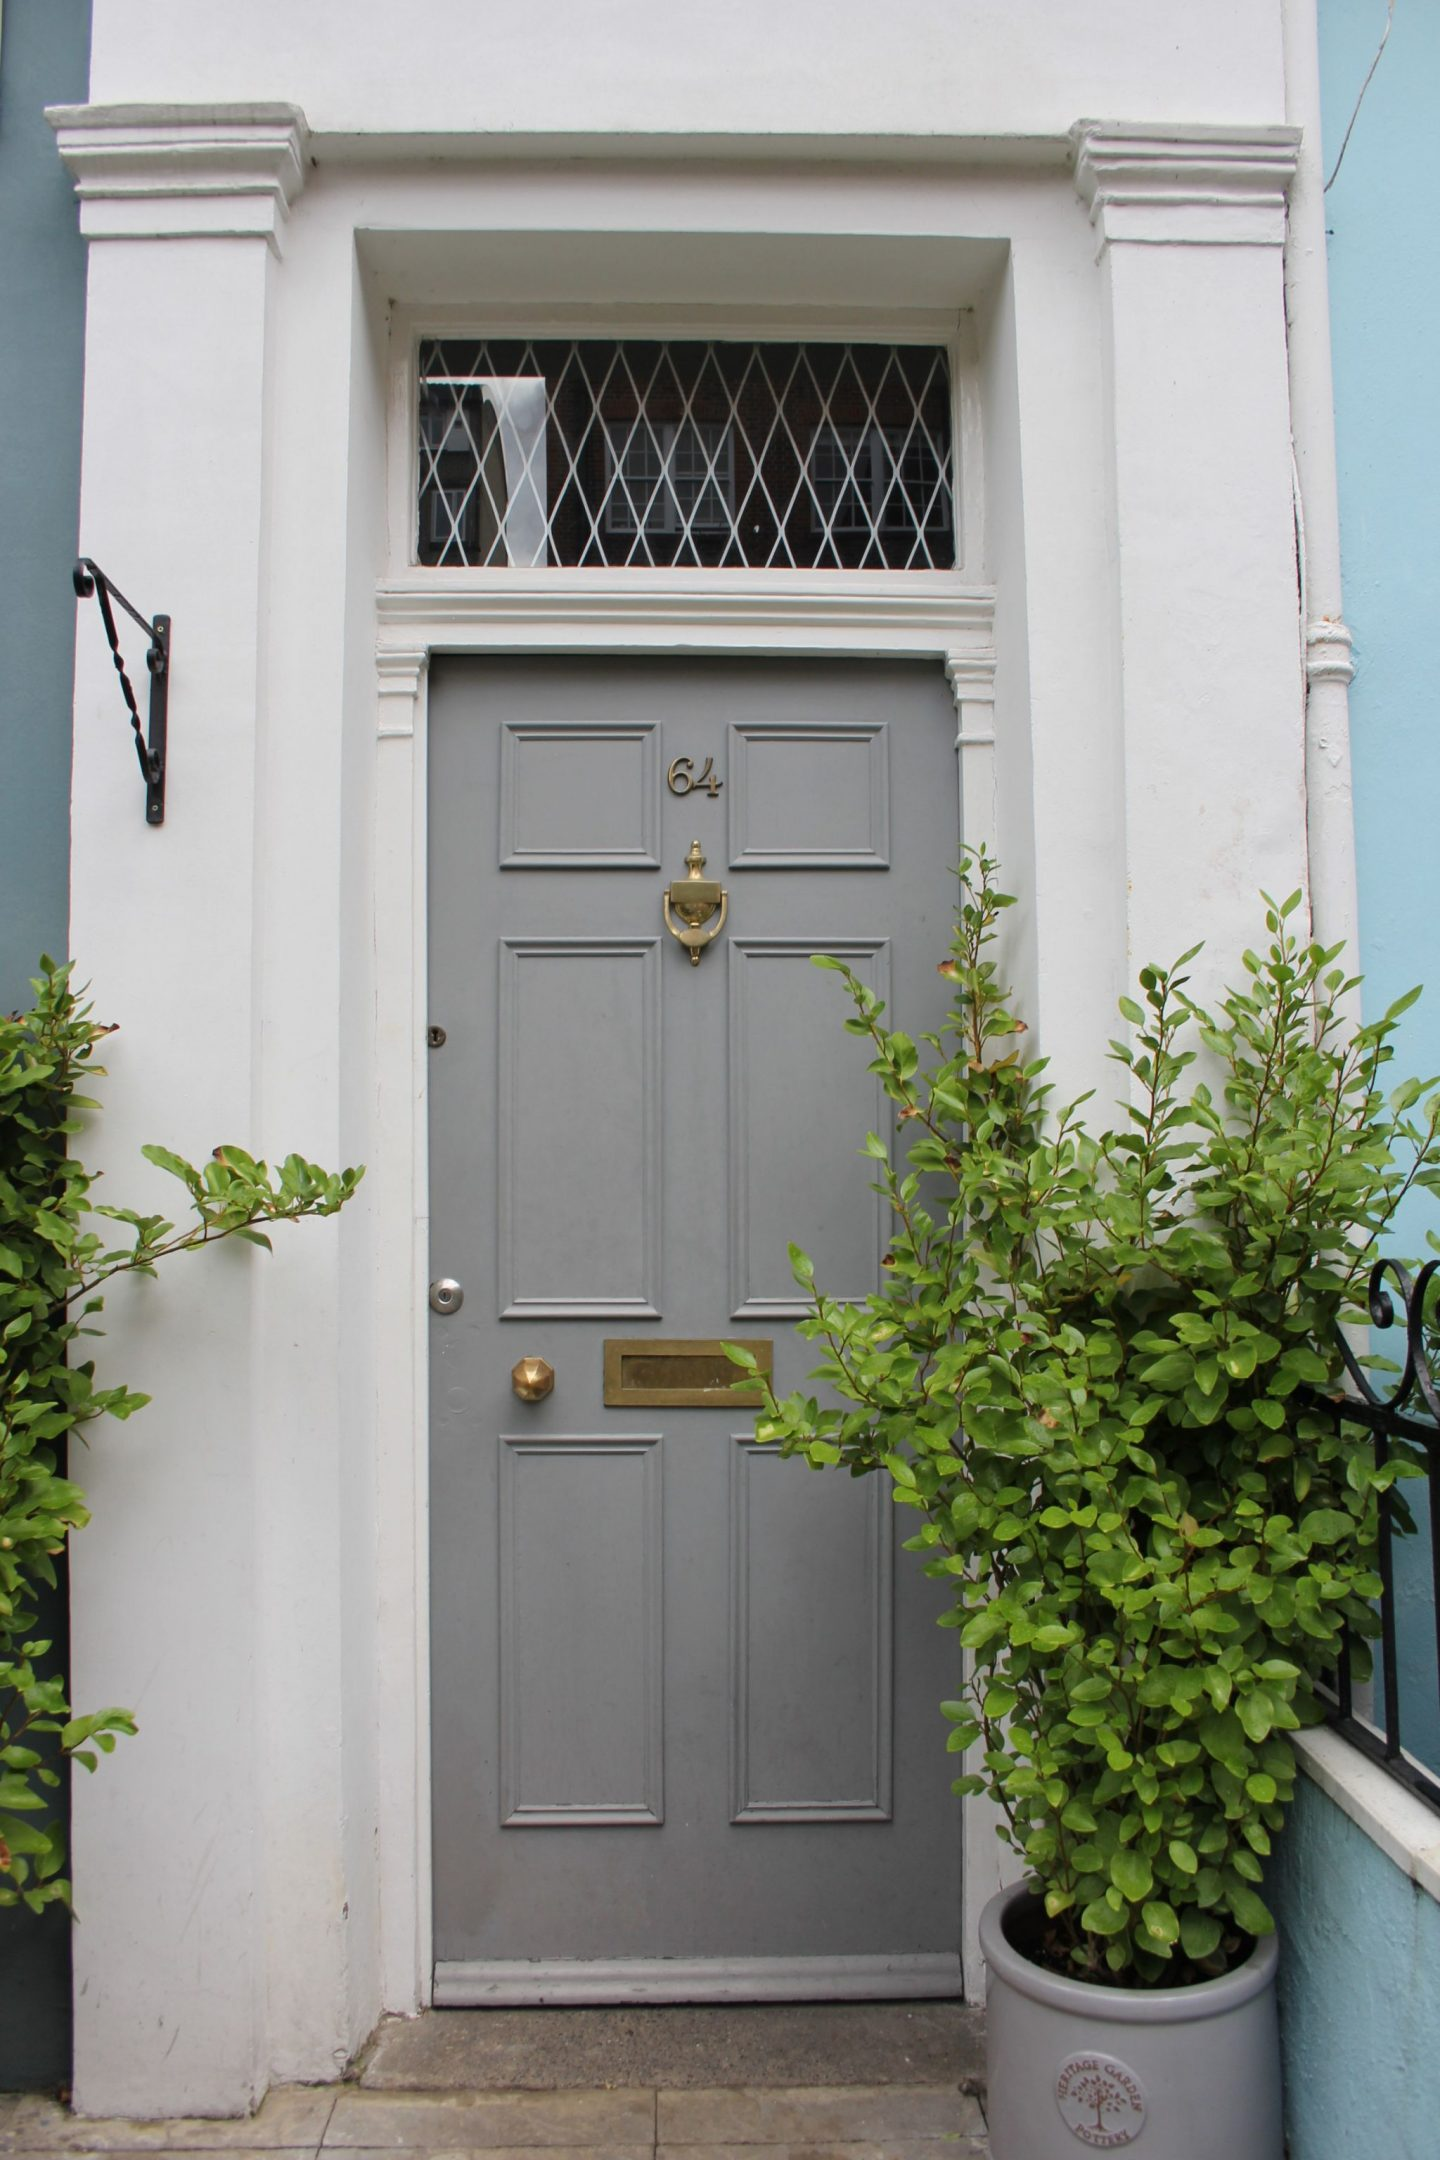 Grey painted front door in London. Hello Lovely Studio. Come tour these gorgeous front doors in Notting Hill and Holland Park...certainly lovely indeed. Curb appeal and Paint Color Inspiration. Lovely London Doors & Paint Color Ideas!